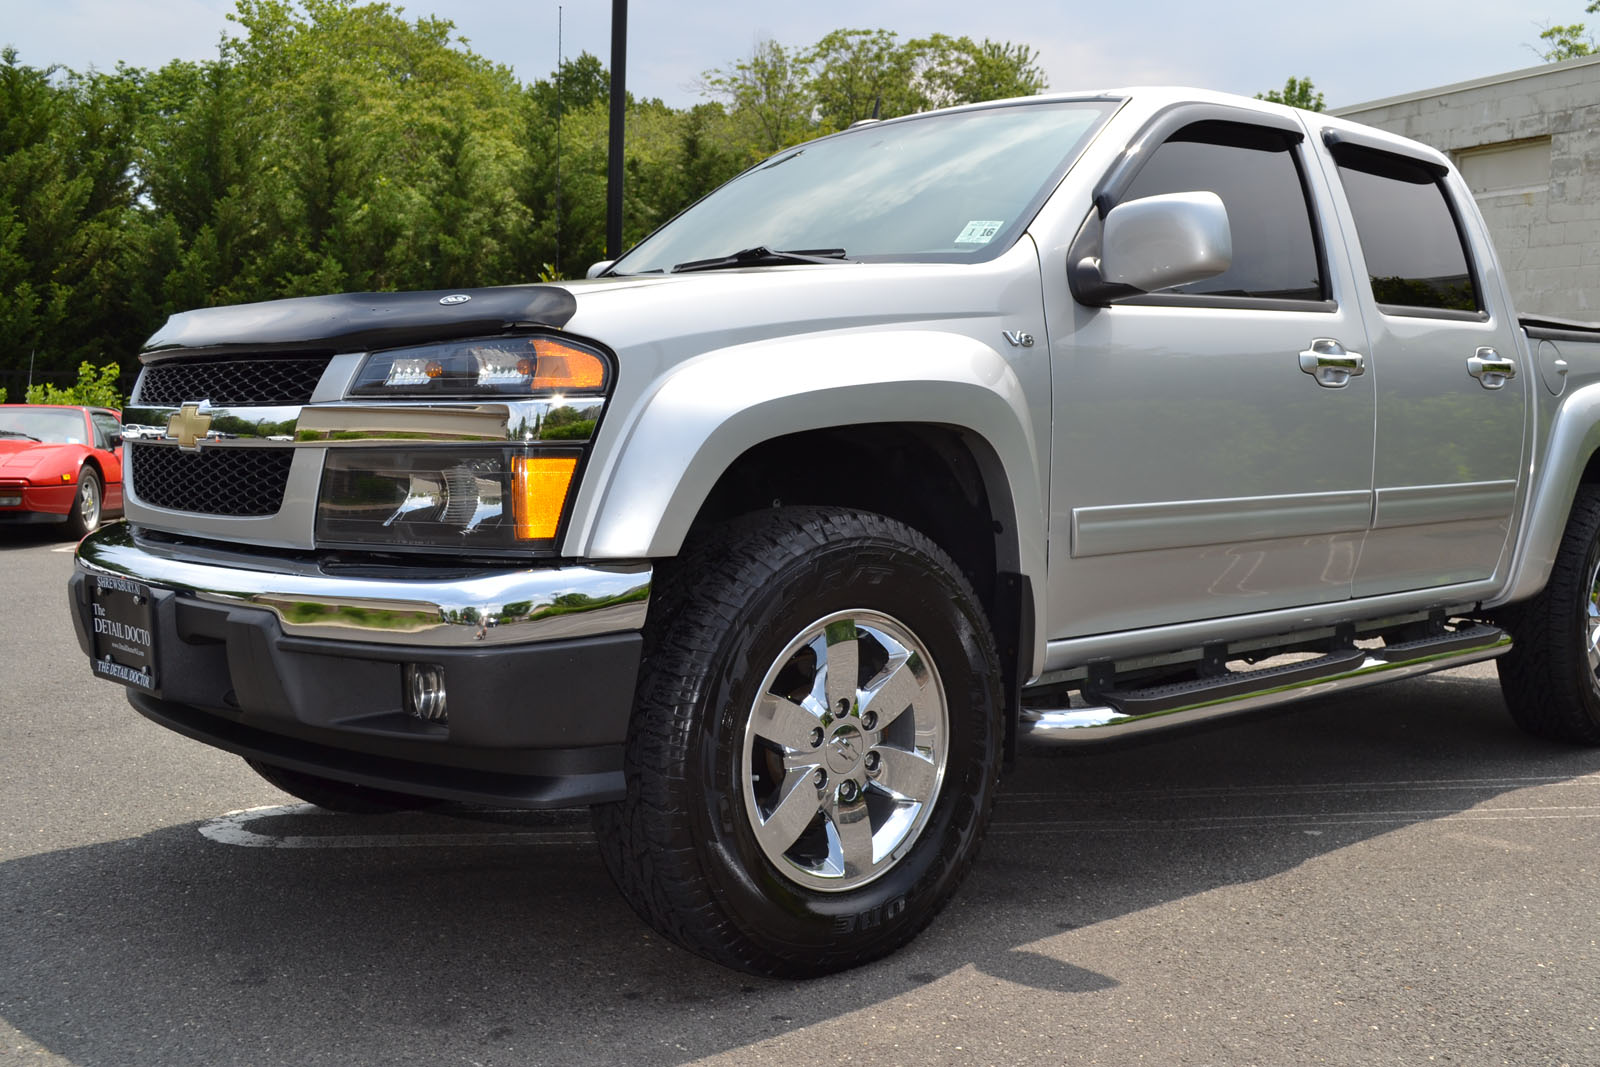 Colorado chevy colorado 5.3 : Colorado » 5.3 Chevy Colorado For Sale - Old Chevy Photos ...